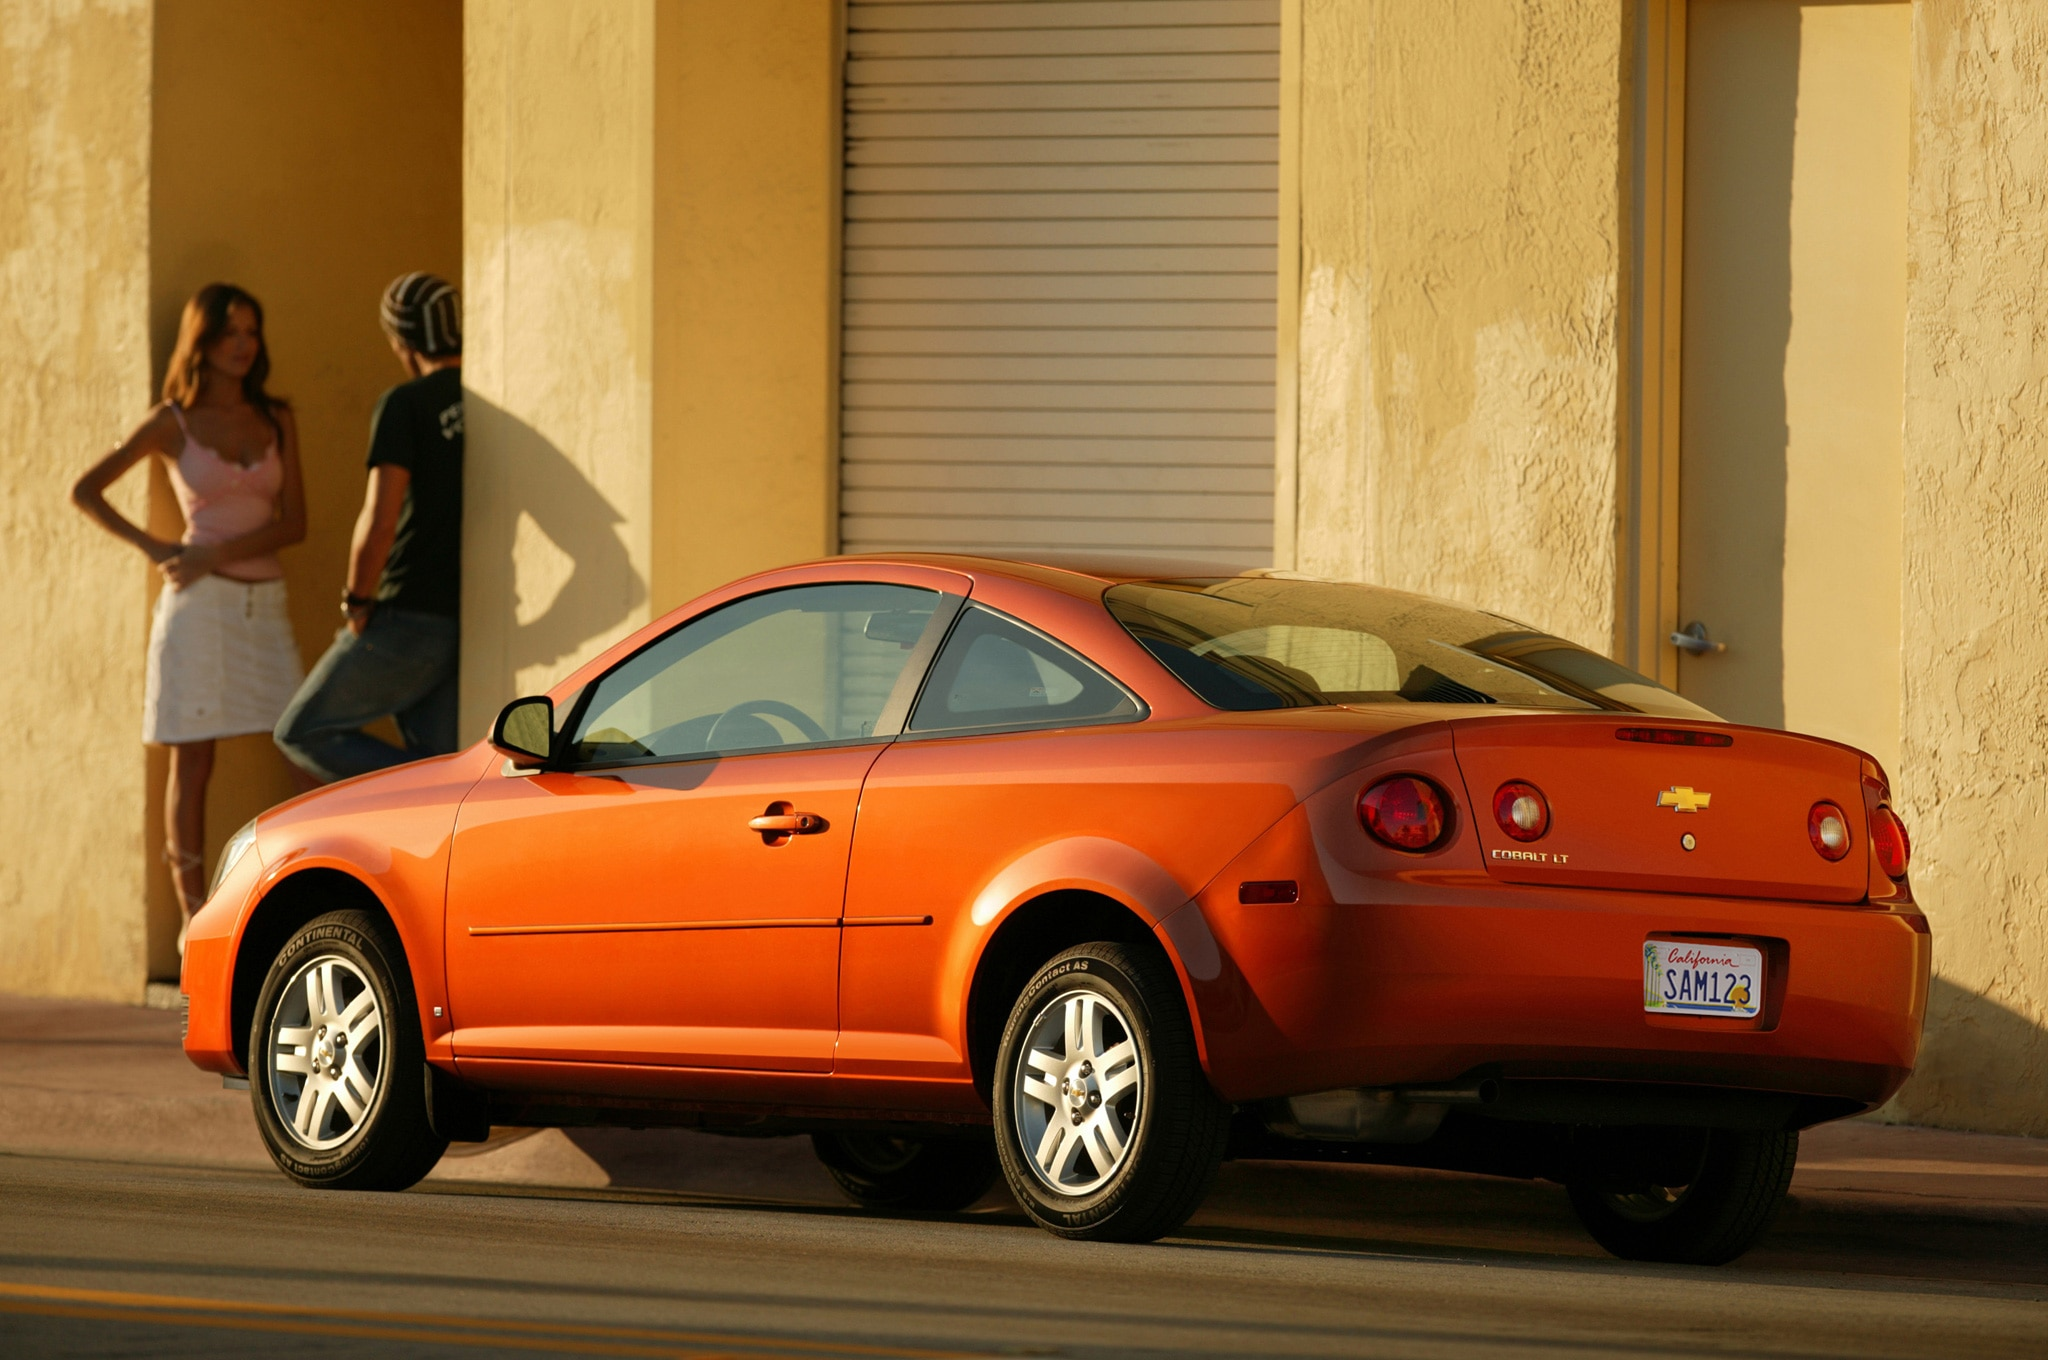 2007 Chevrolet Cobalt Coupe Rear Side View4